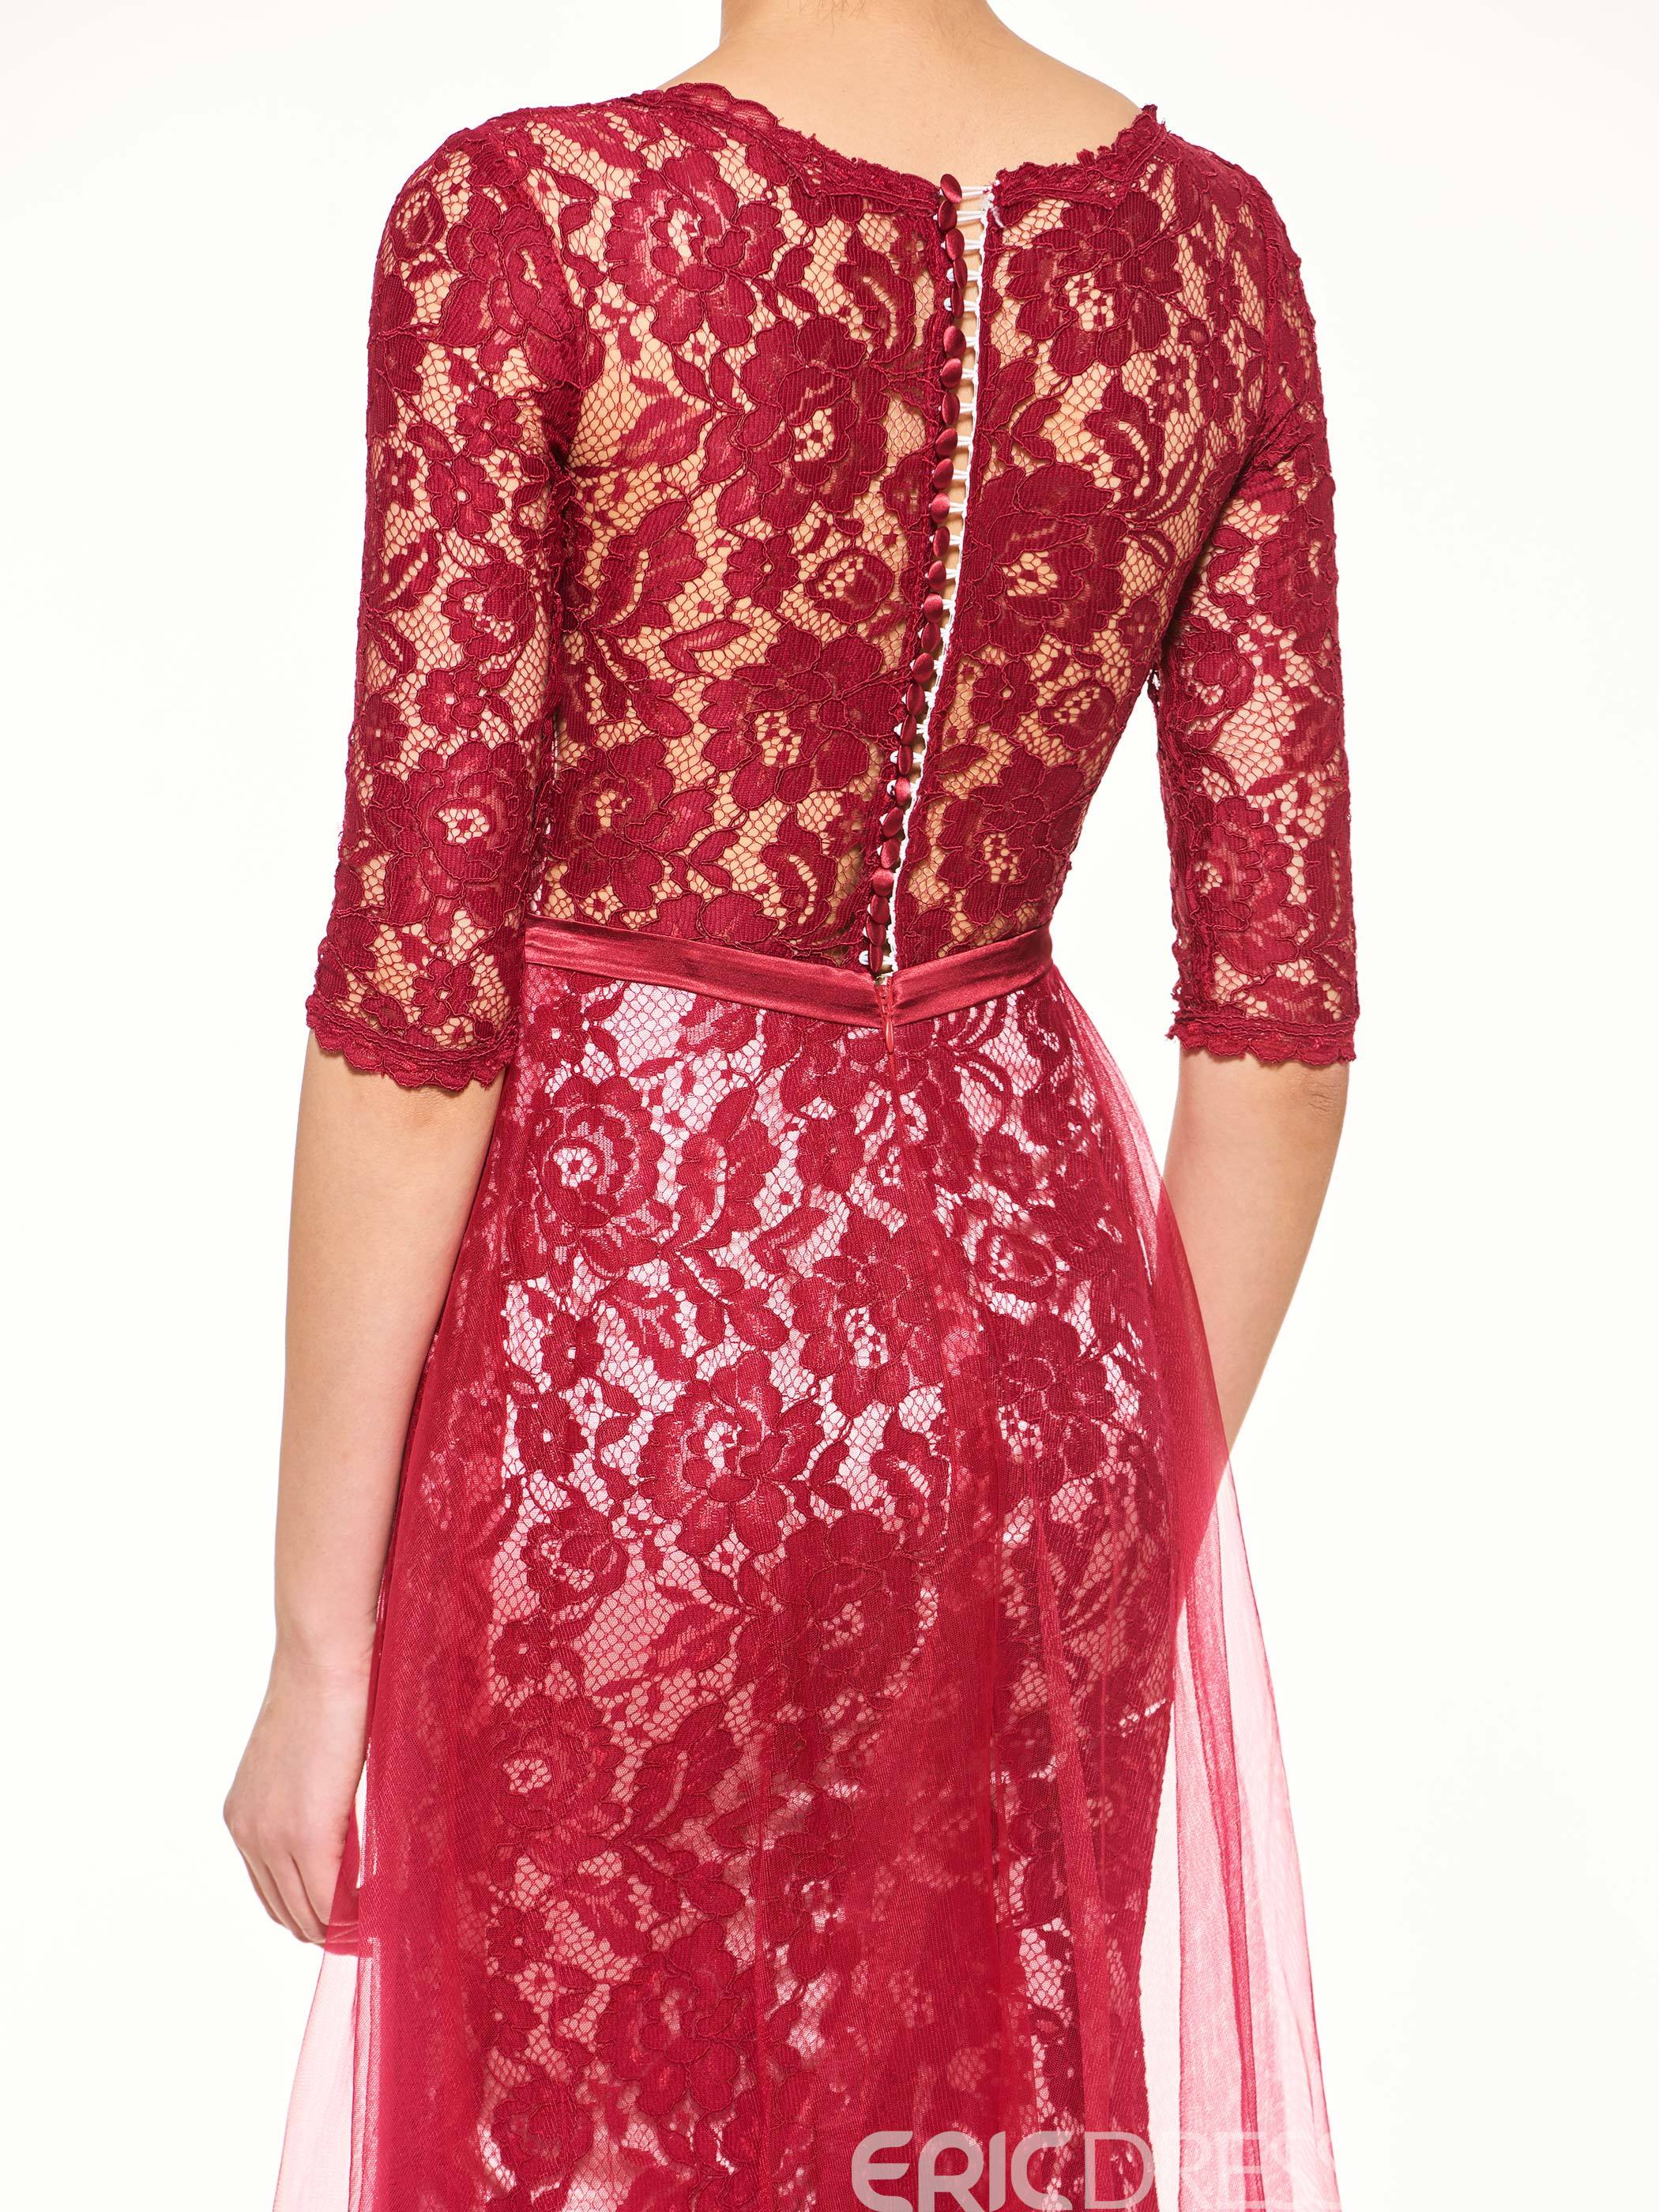 Ericdress Elegant Half Sleeves Sheath Lace Long Mother Of The Bride Dress